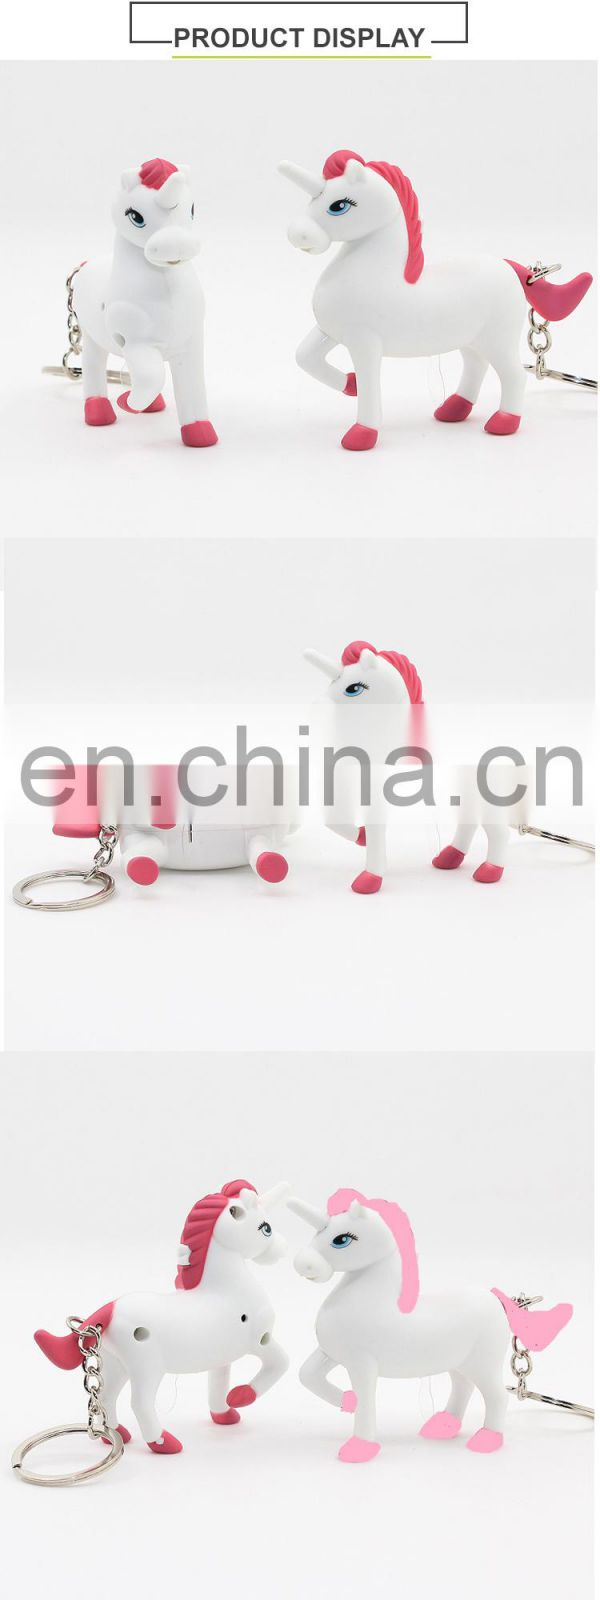 New arrival unicorn keychain with led light and unicorn sound